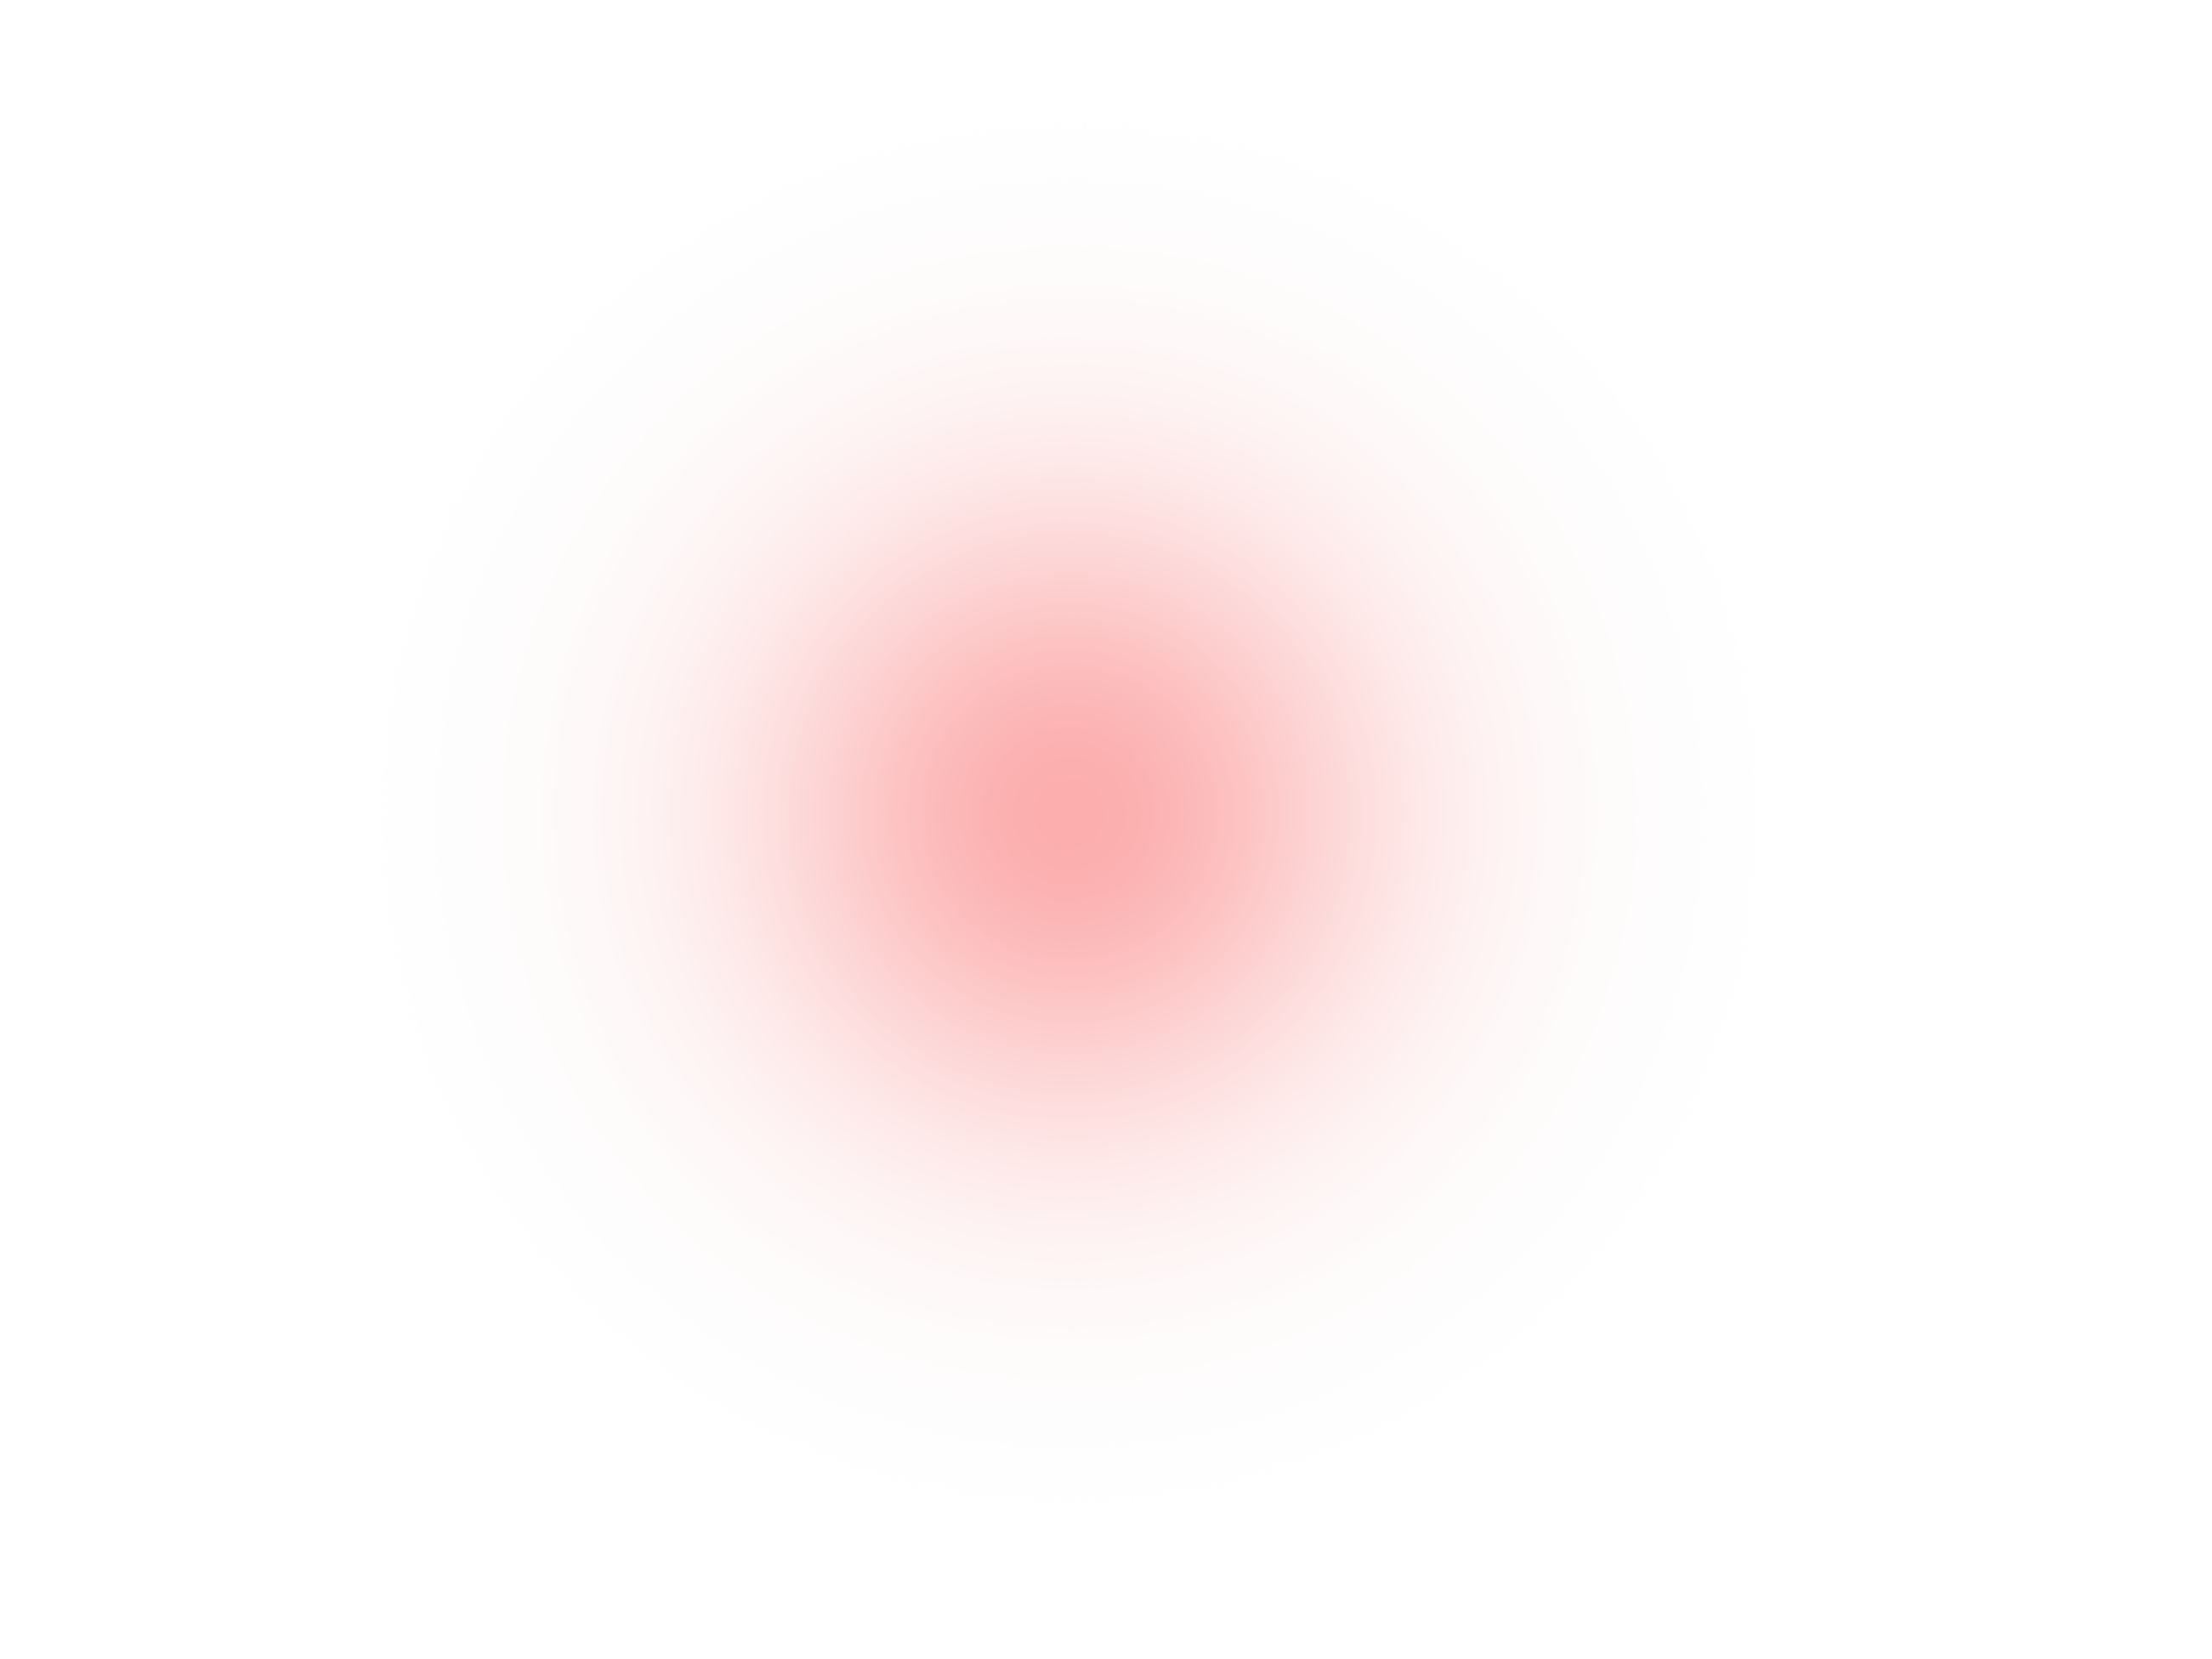 Red Glow Png & Free Red Glow.png Transparent Images #28612 ... picture royalty free